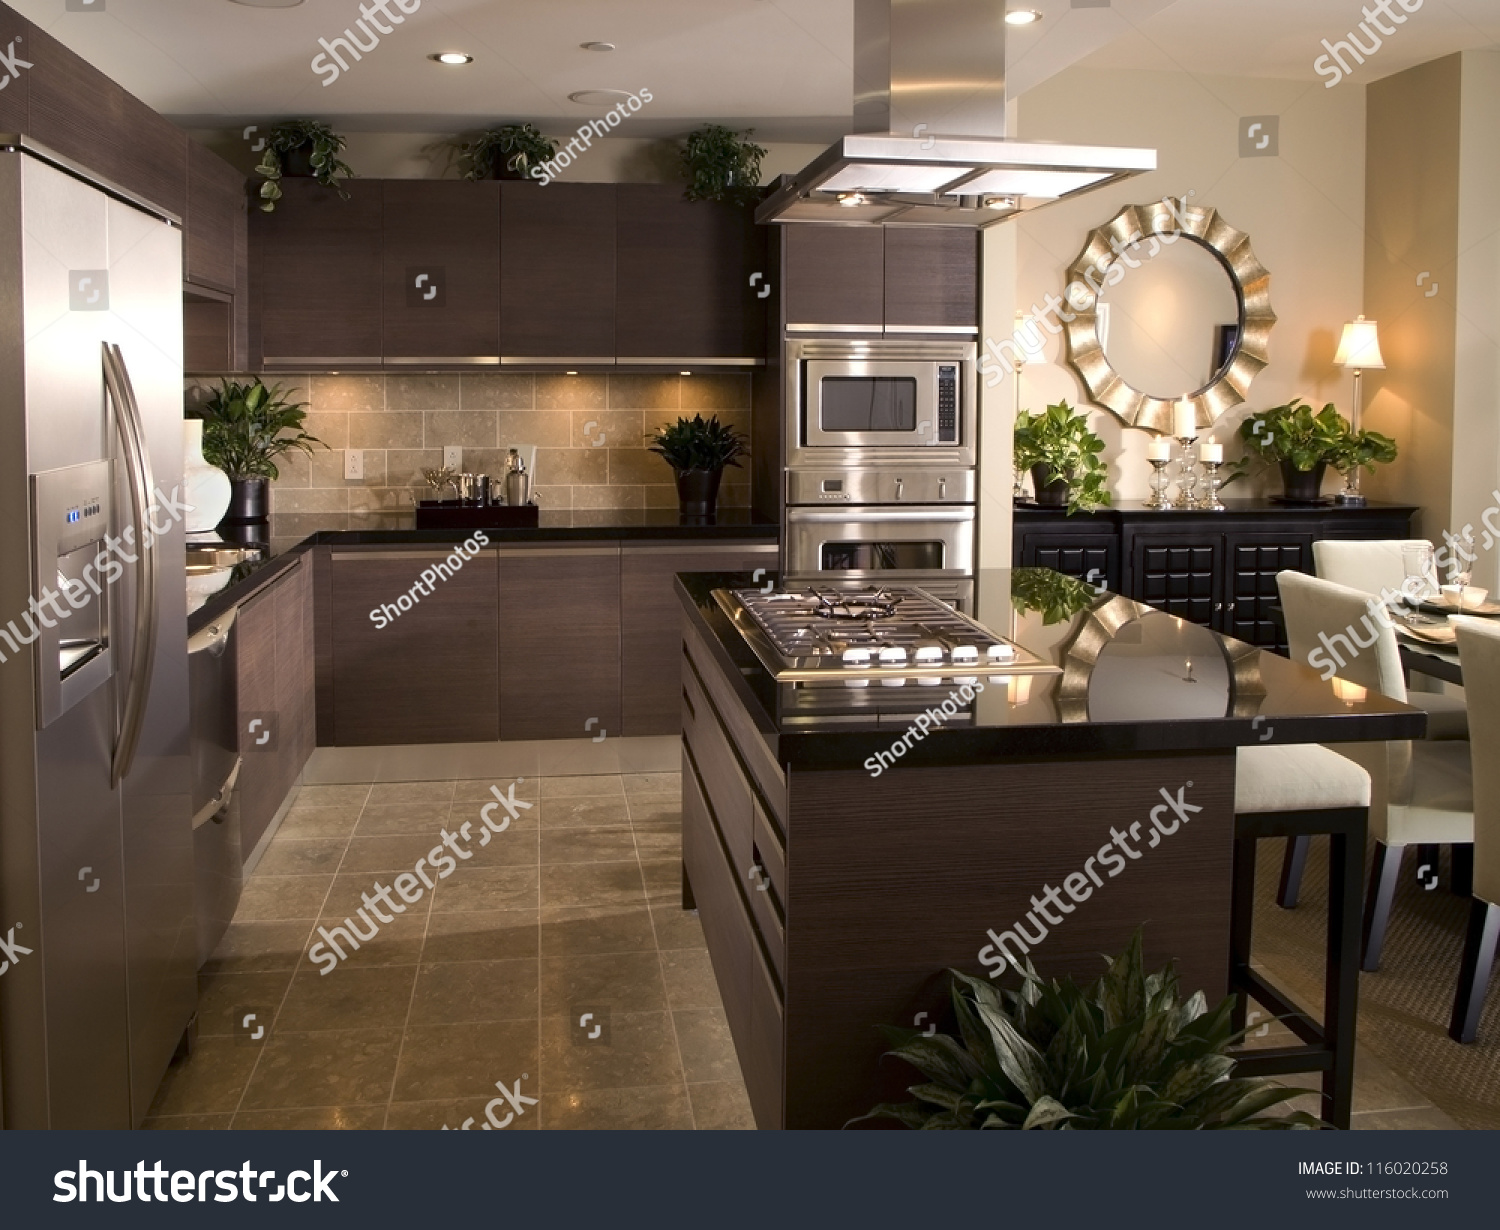 Kitchen Interior Design Kitchen Interior Design Architecture Stock Imagesphotos Stock